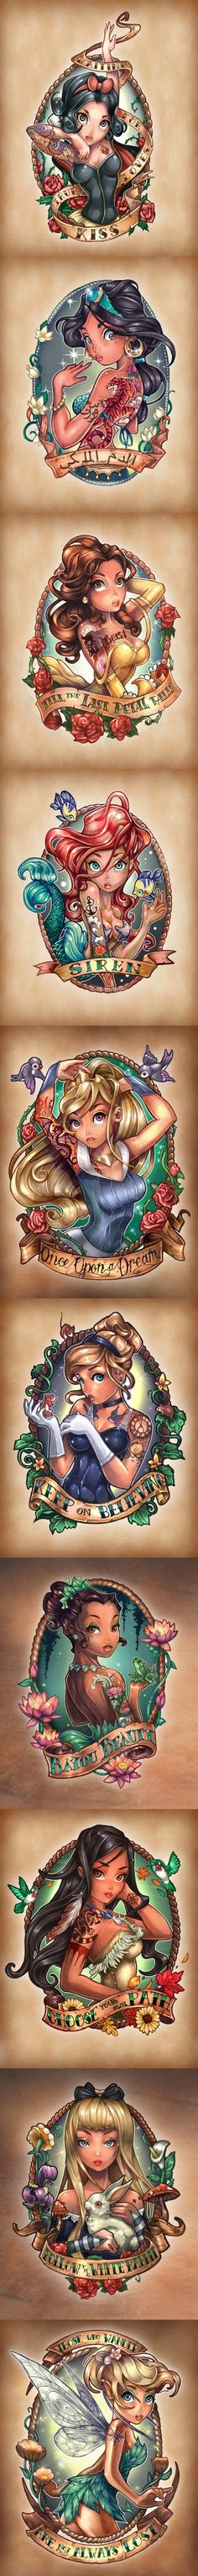 Disney Princess Tattoos (would never get but still kinda neat to look at!)